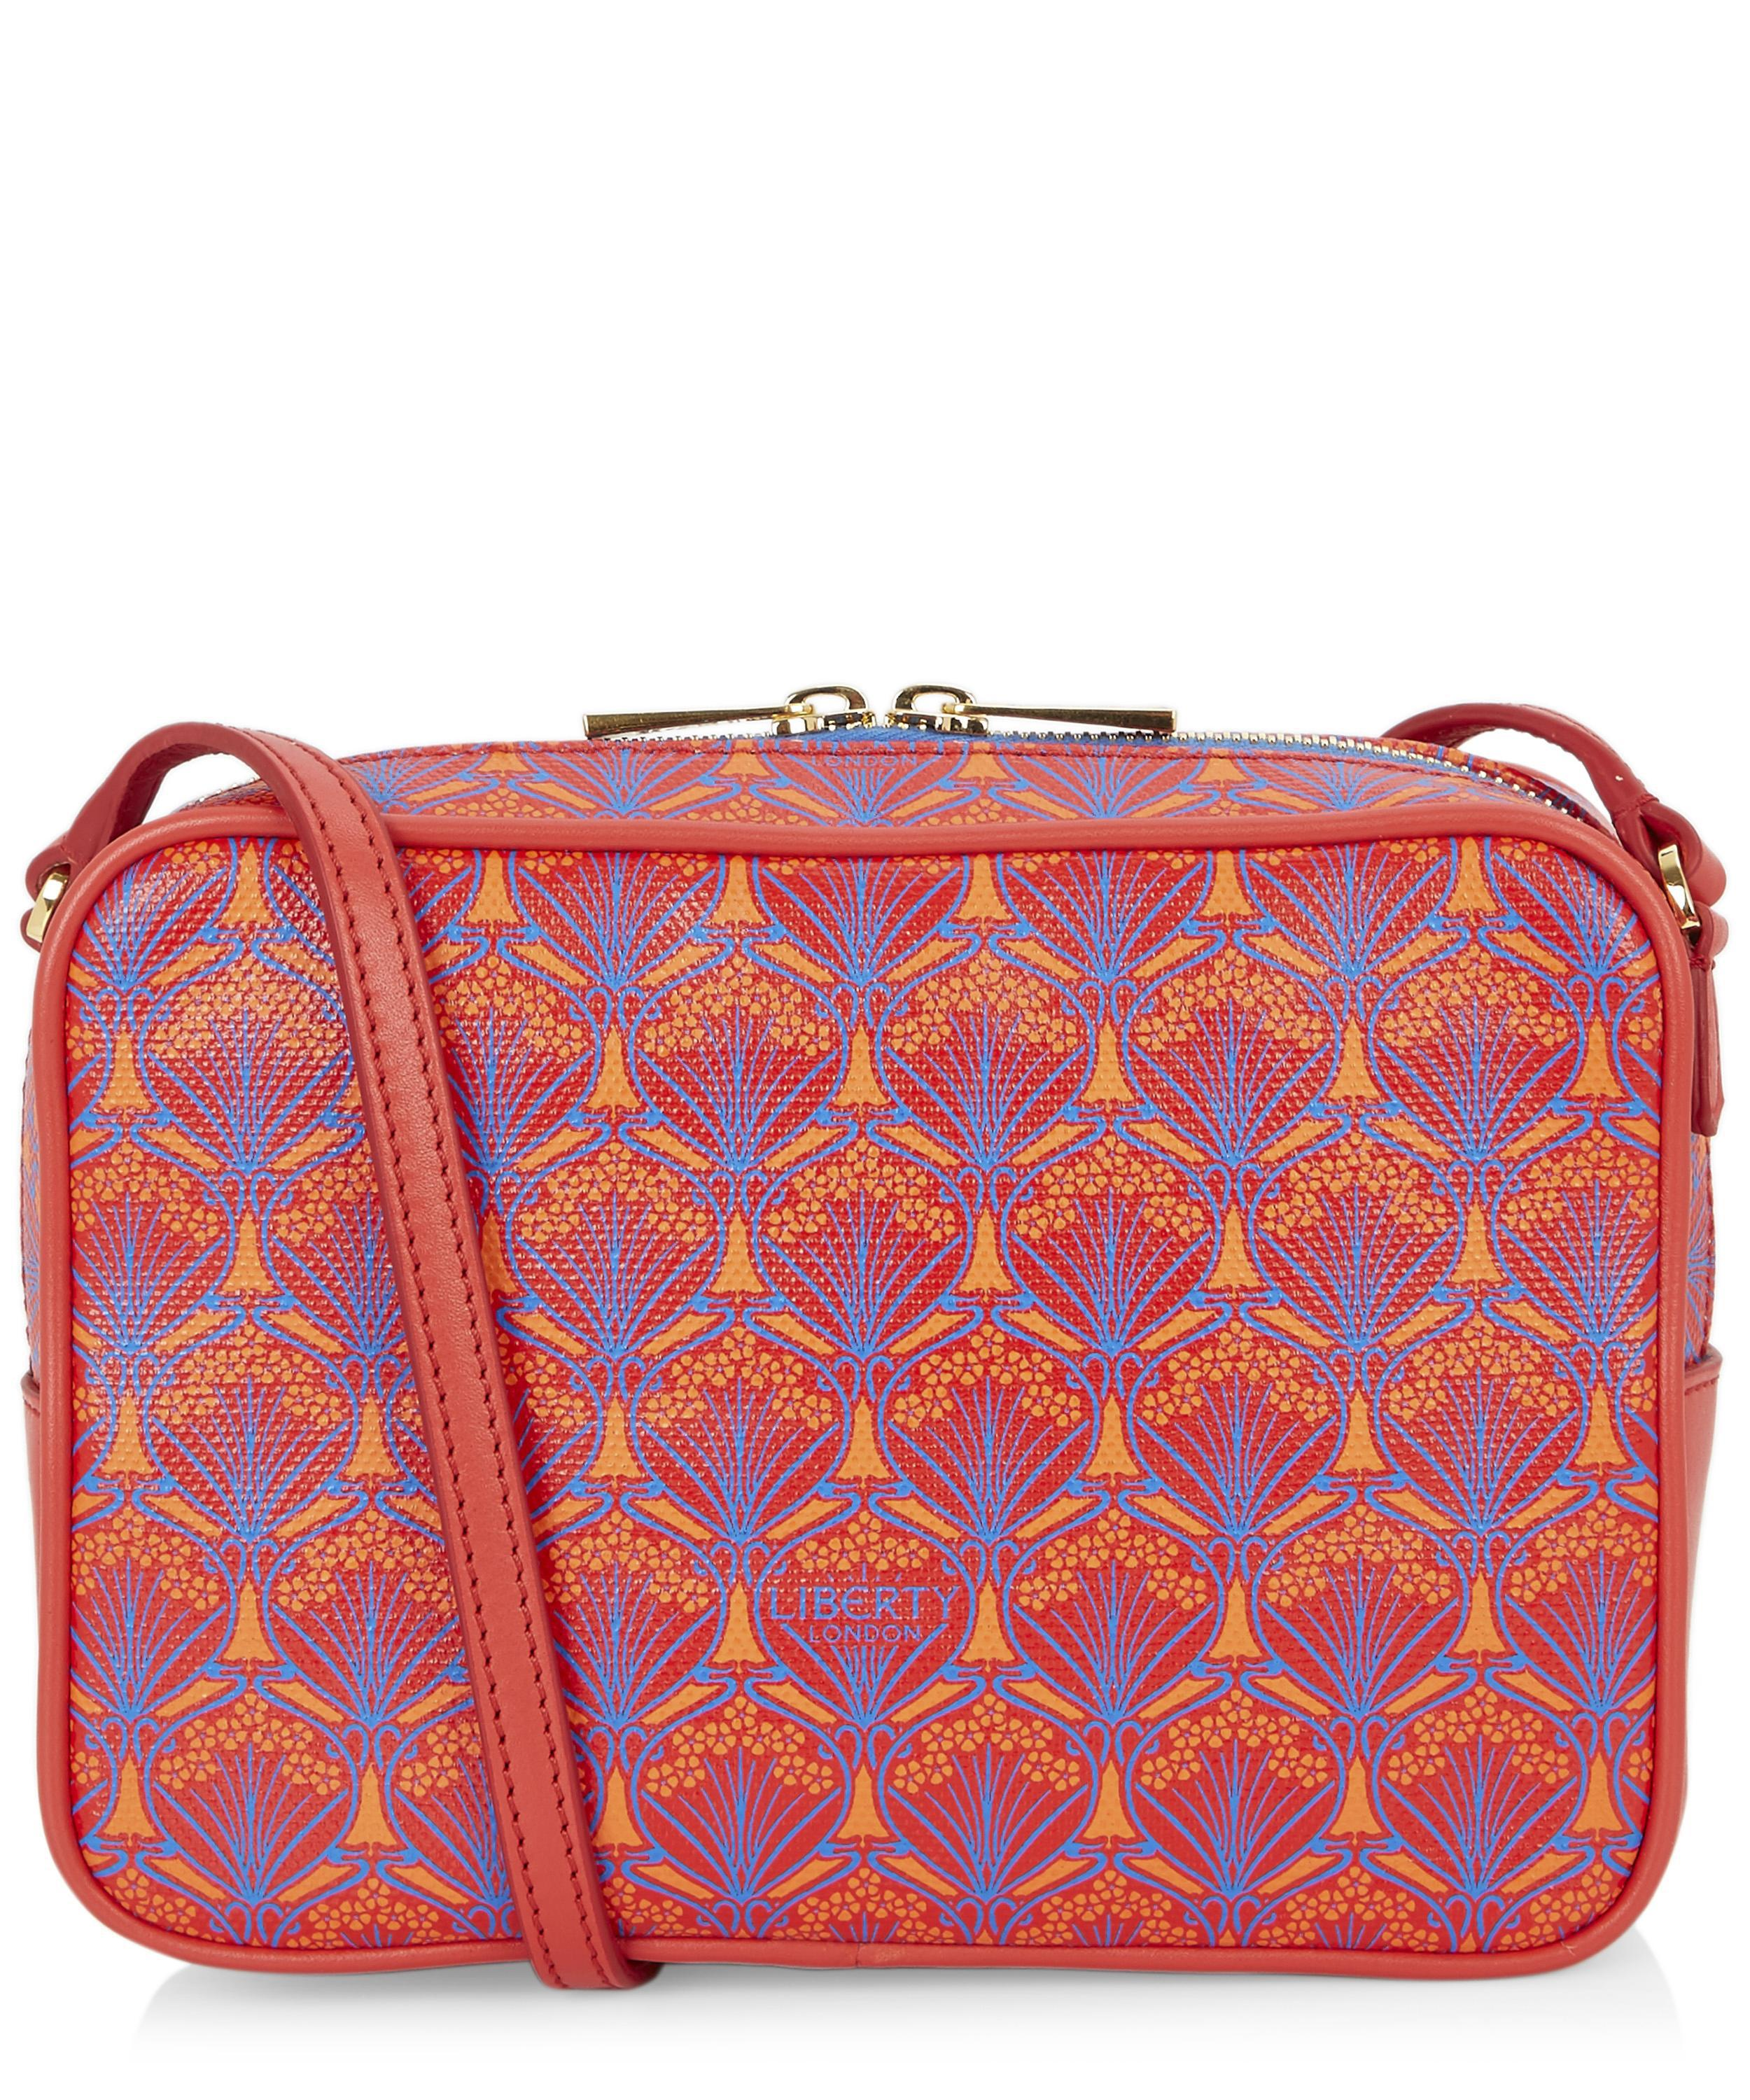 691e864039 Liberty Maddox Cross-body Bag In Iphis Coated Canvas in Red - Lyst